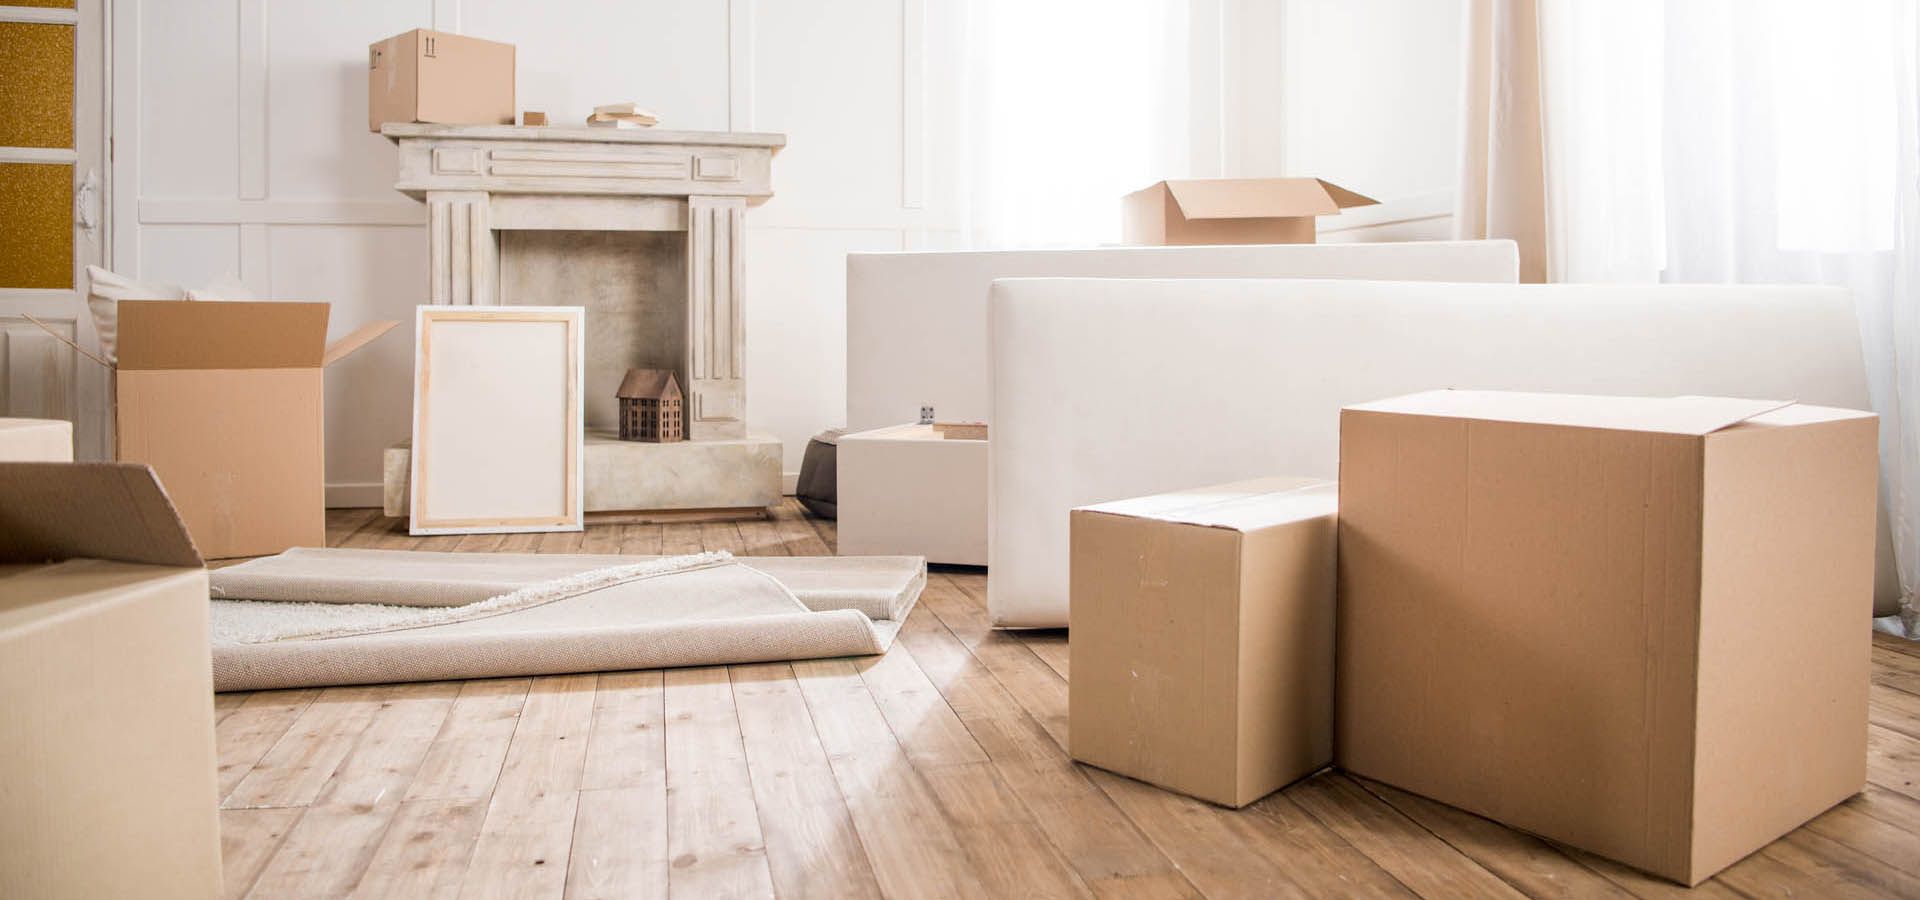 Learn how to Wrap Furnishings for Transferring and Storage